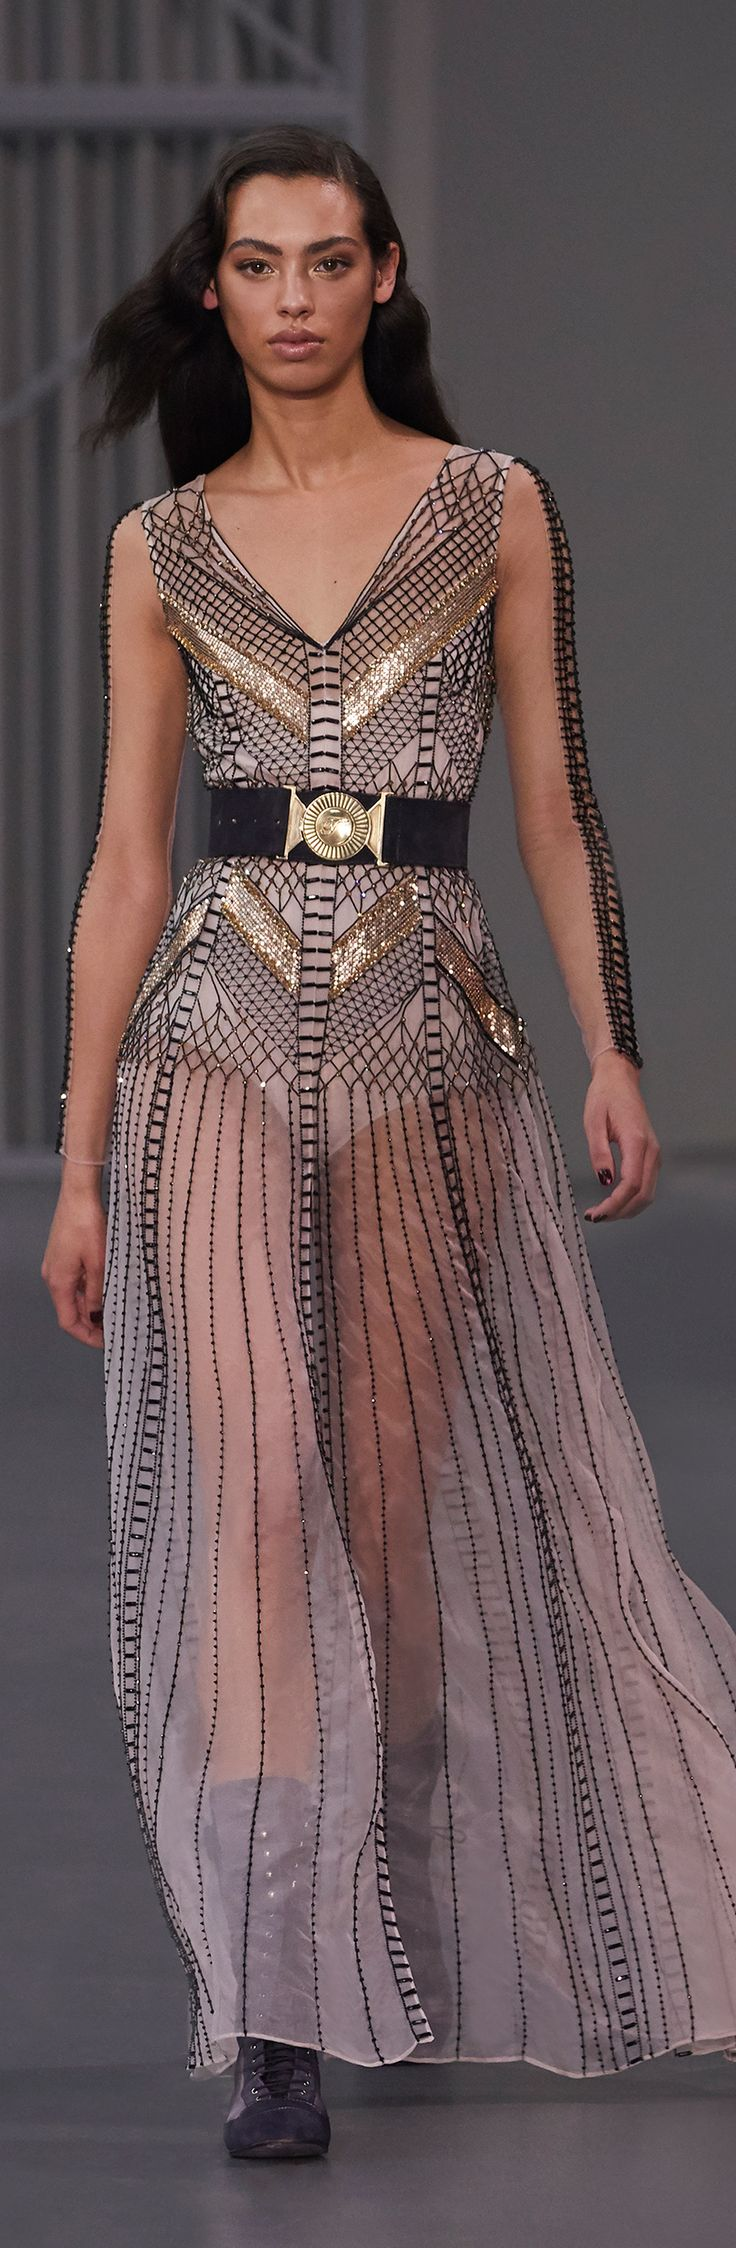 Pre-order the Temperley London Winter 2018 Insignia Cut-out Dress by Alice Temperley